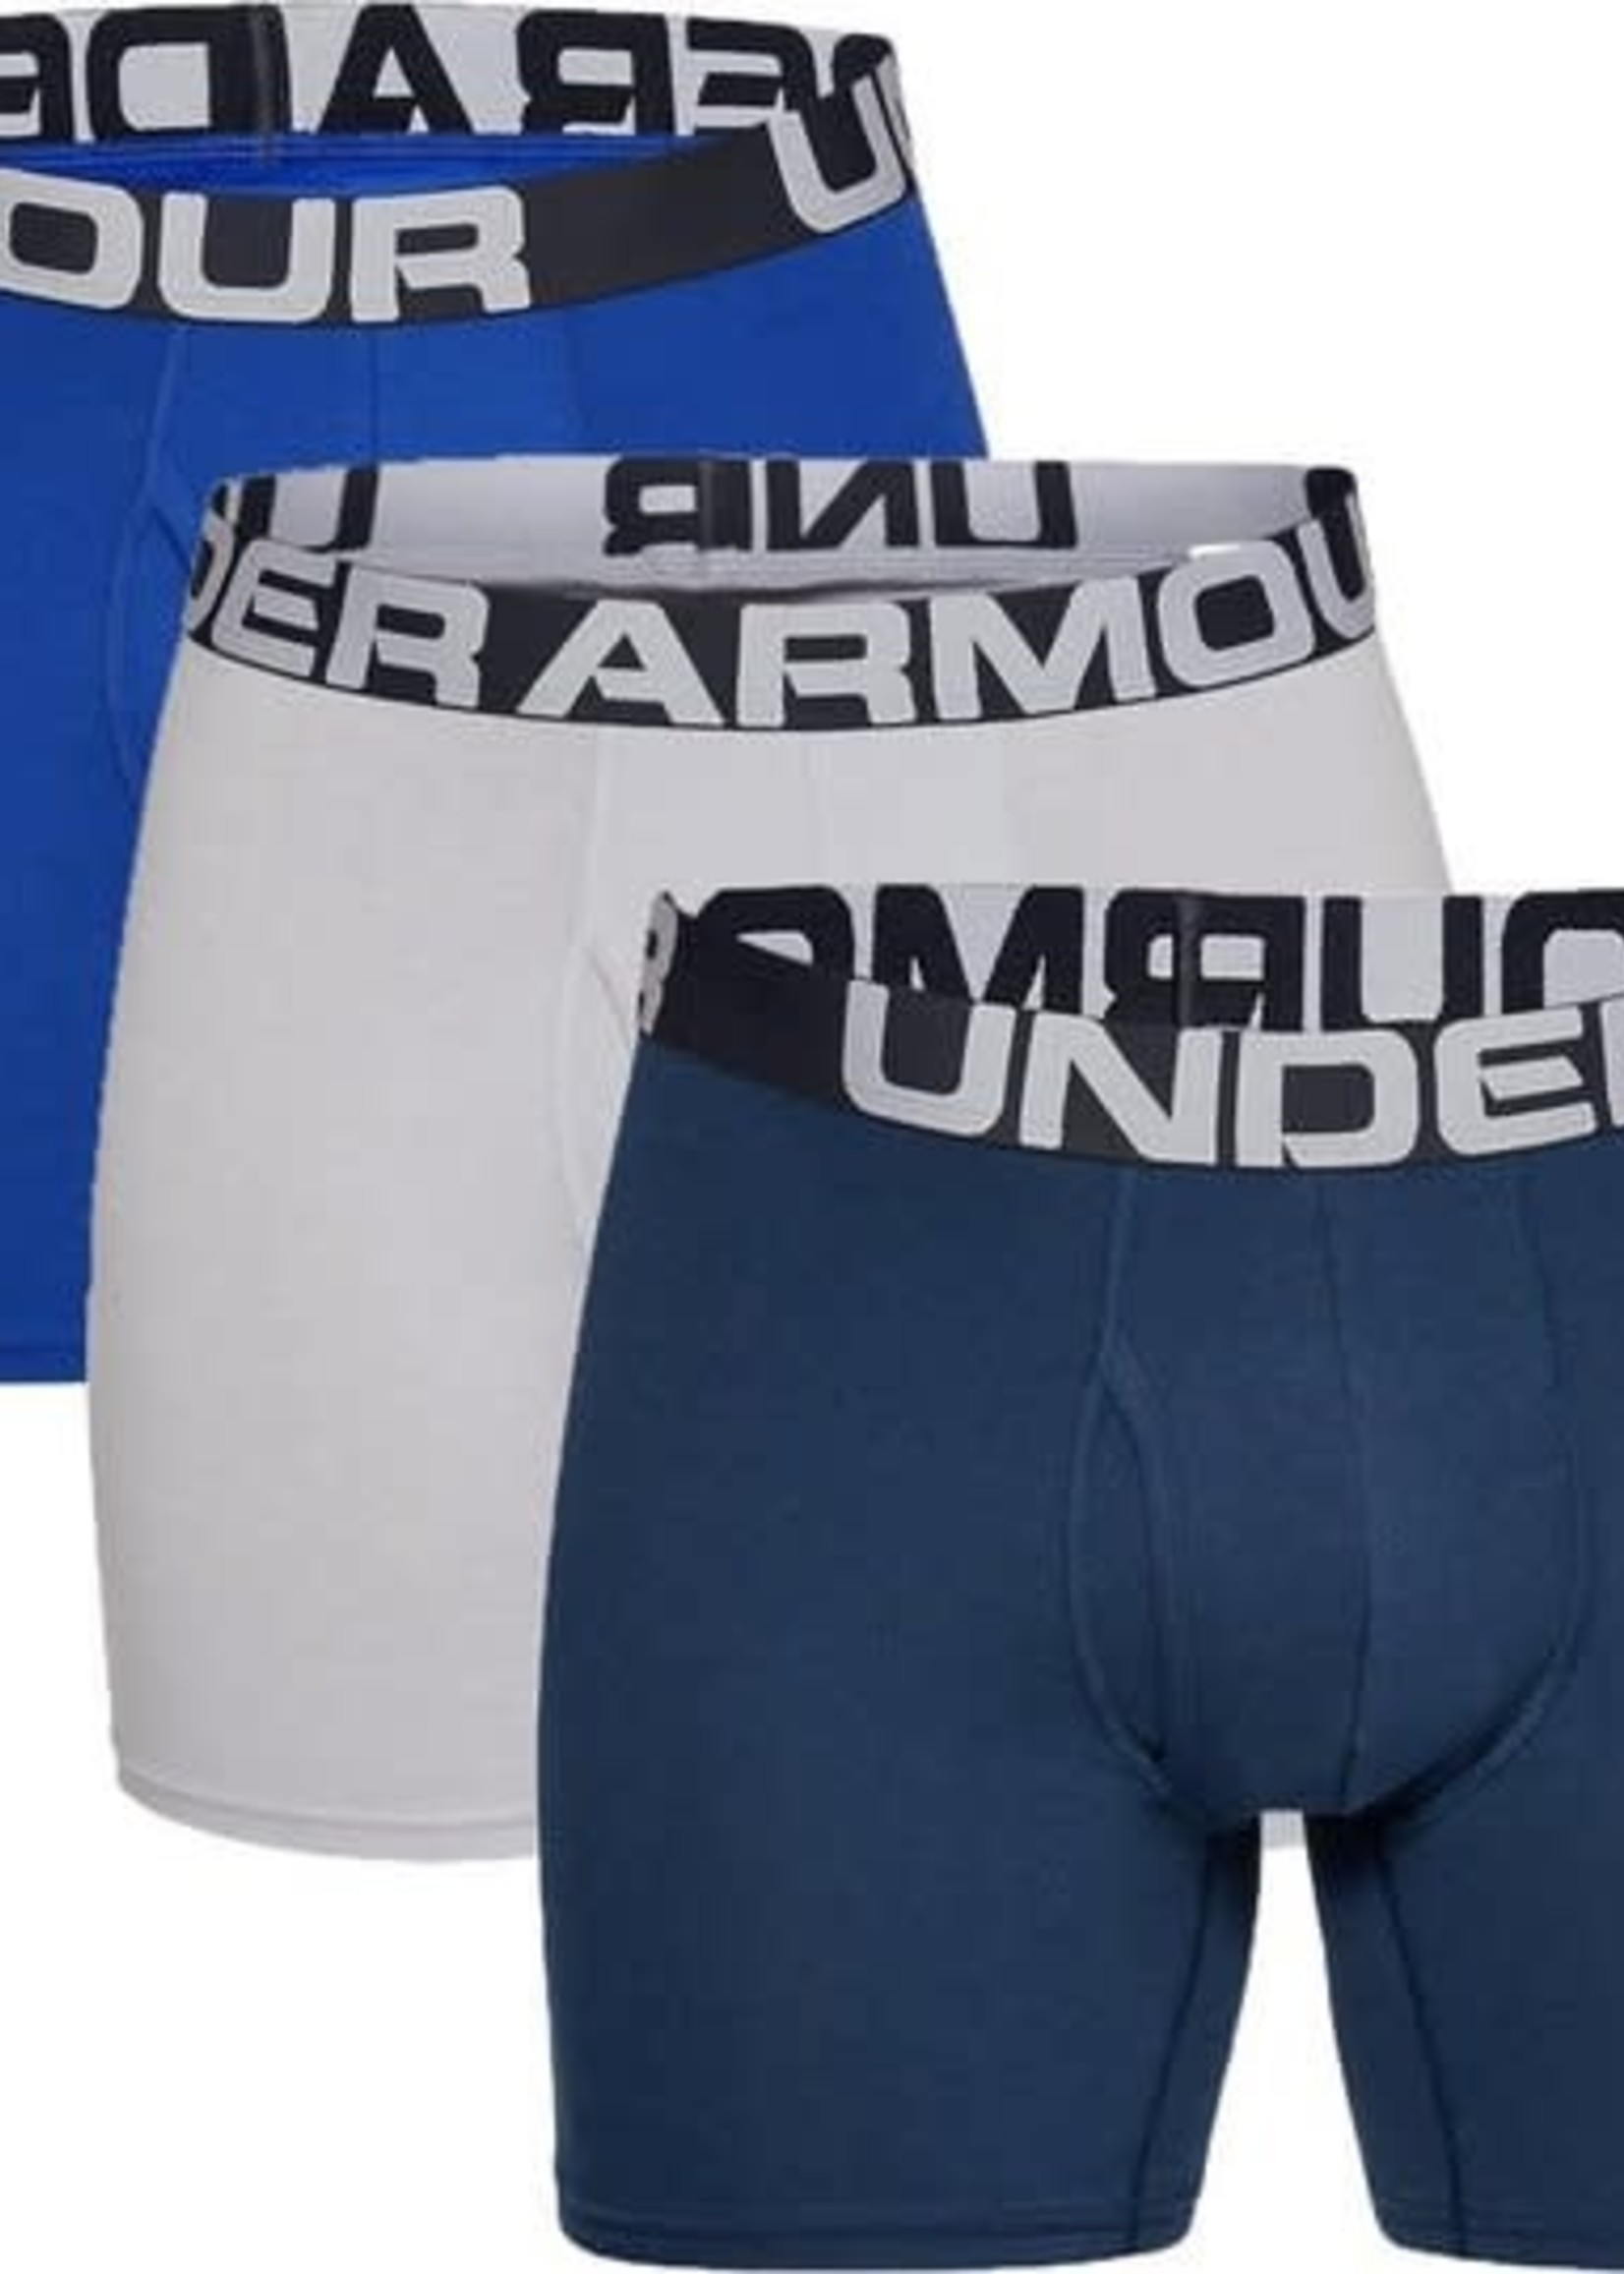 Under Armour Charged Cotton 6in 3 Pack-Royal / Academy / Mod Gray Medium